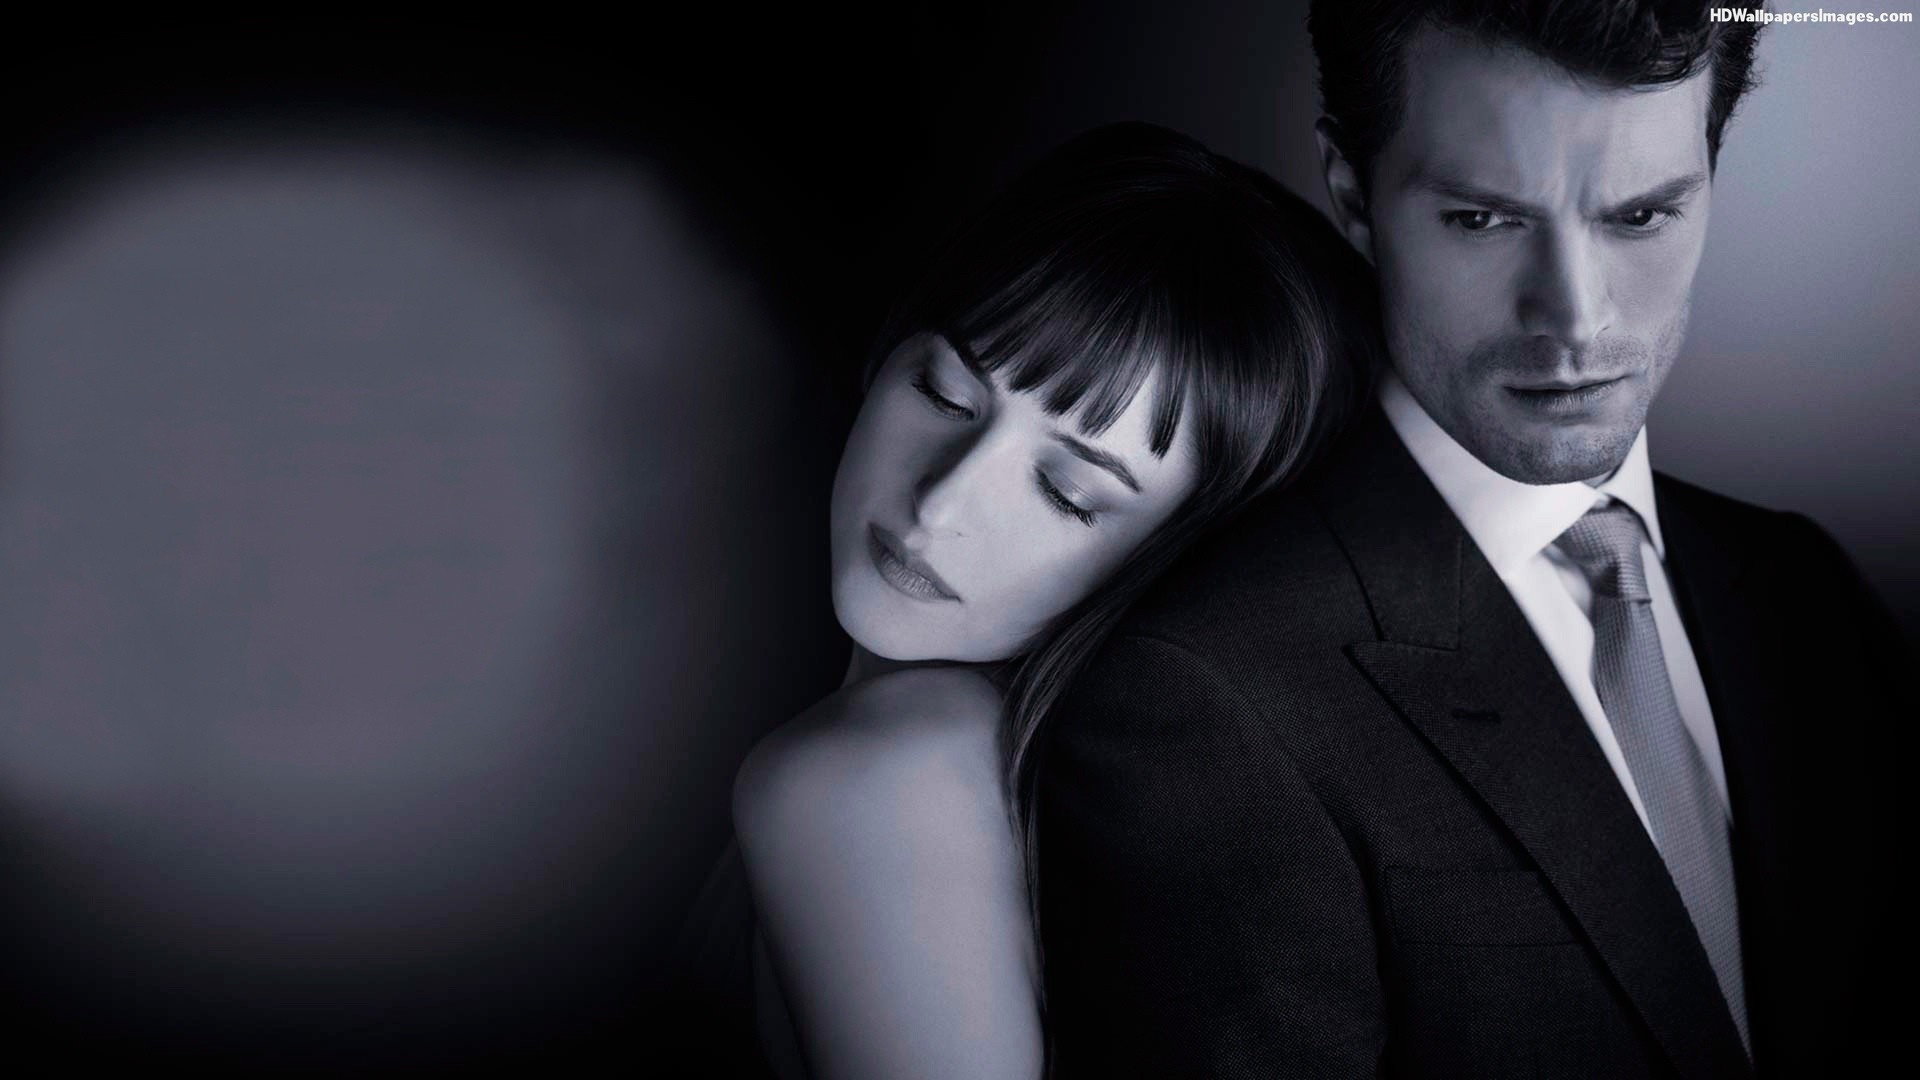 Christian Grey Wallpapers Posted By Ryan Tremblay